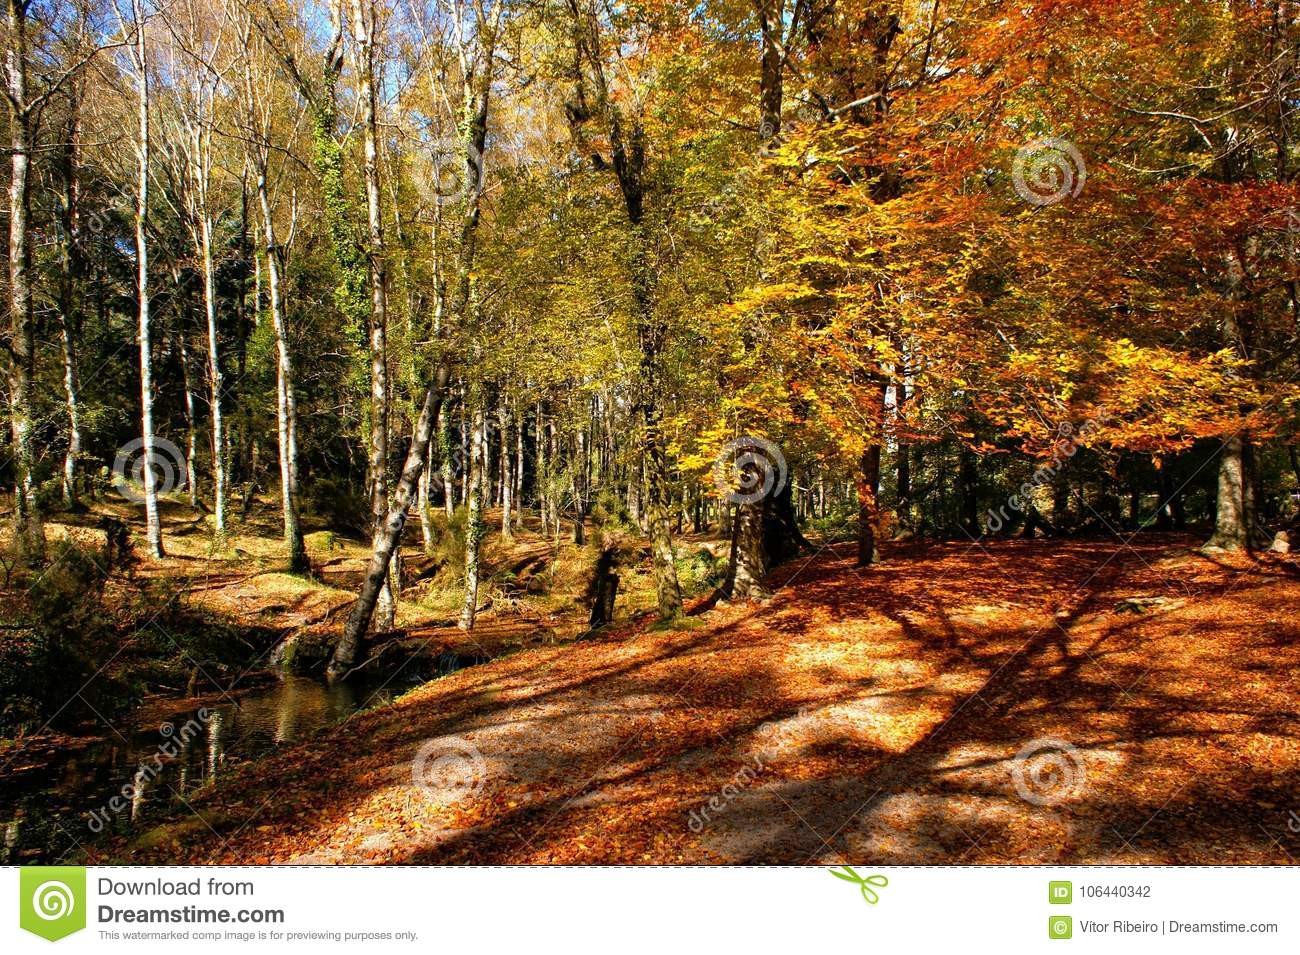 Autumn trees in the National Park of Geres